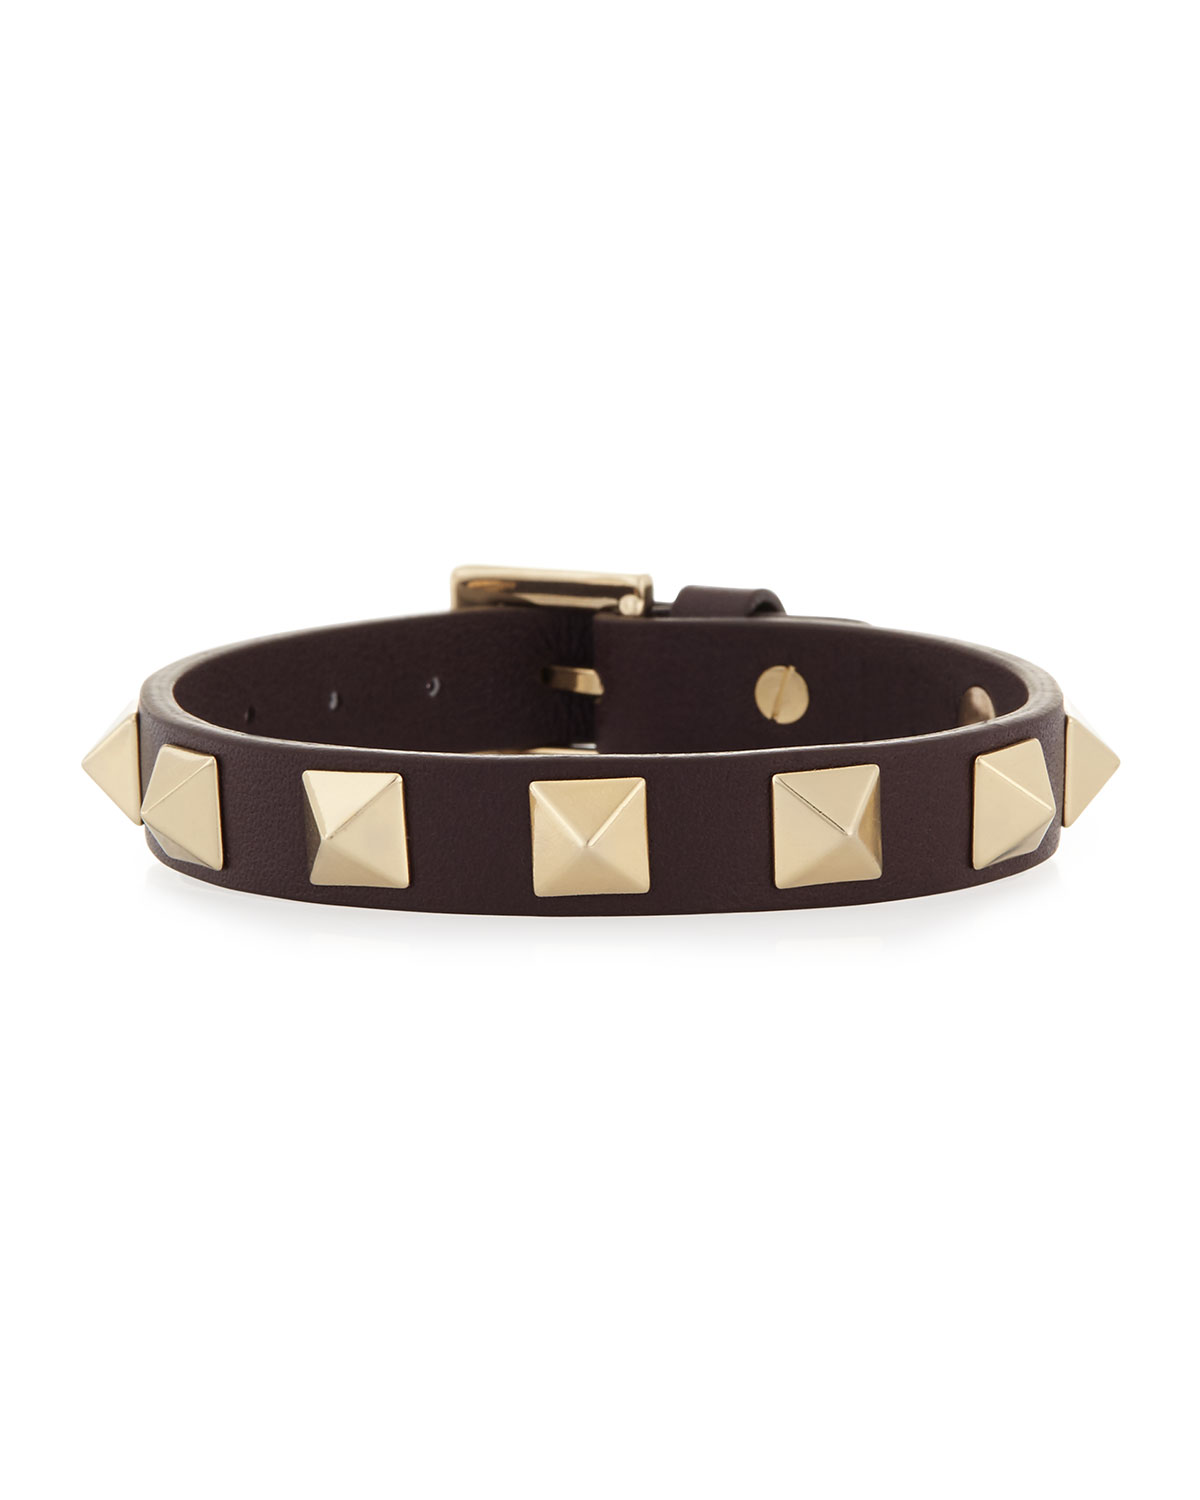 Small Rockstud Leather Bracelet, Size: S, BLACK - Valentino